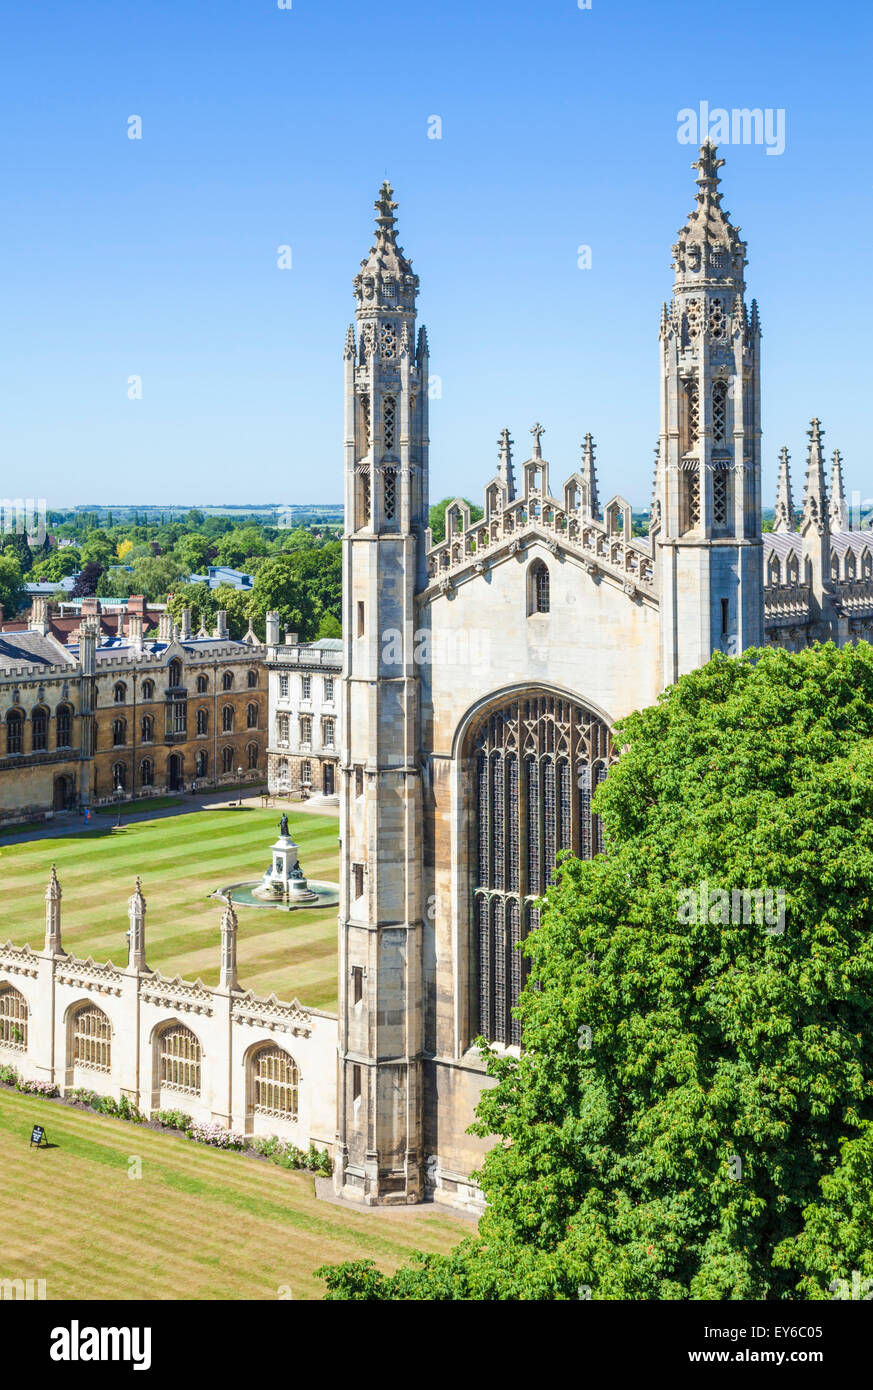 Kings College Chapel Cambridge University Cambridgeshire England UK GB EU Europe - Stock Image